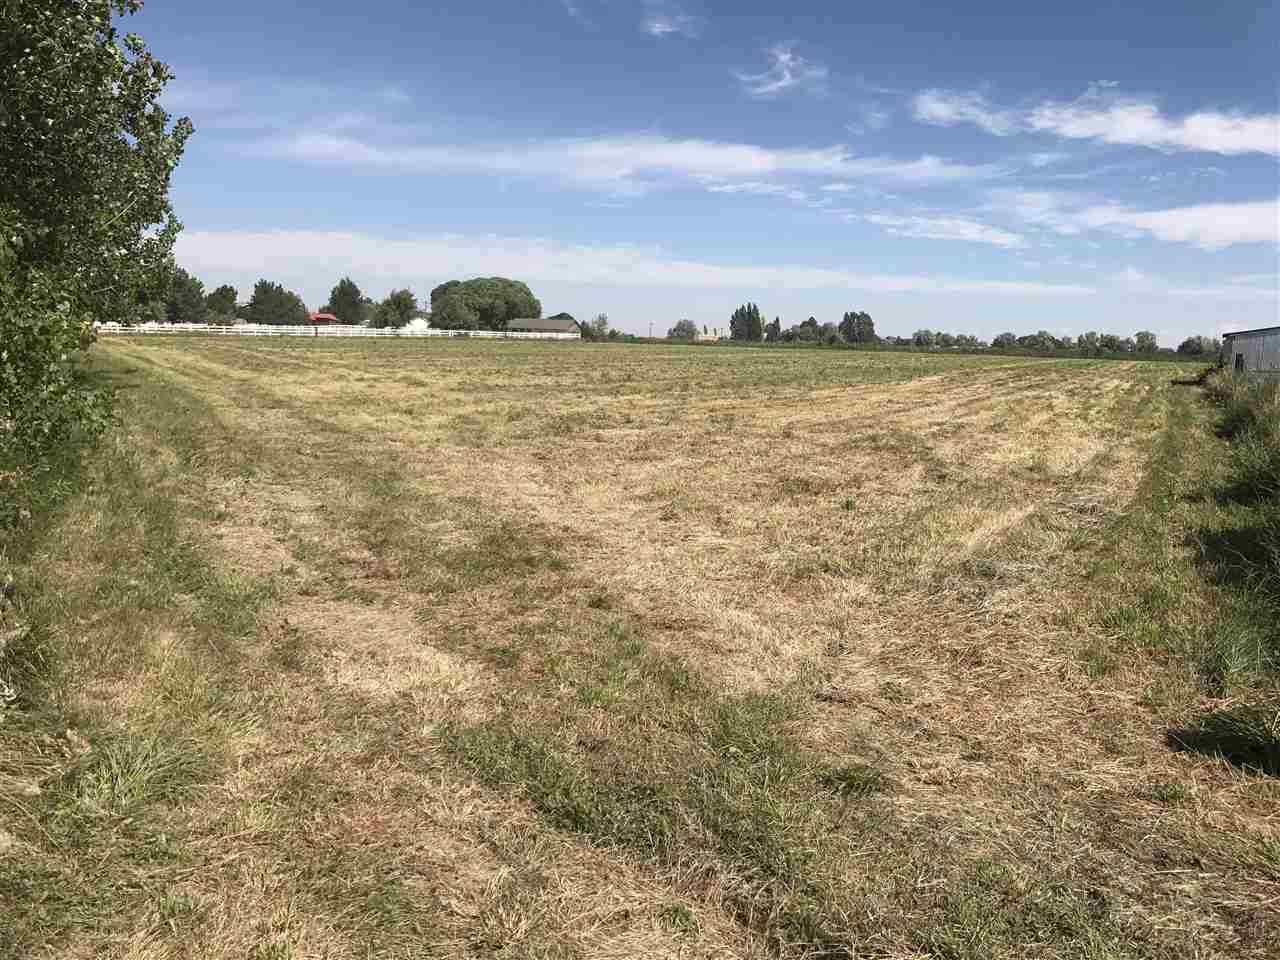 Land for Sale at 842 W 500 S 842 W 500 S Heyburn, Idaho 83336